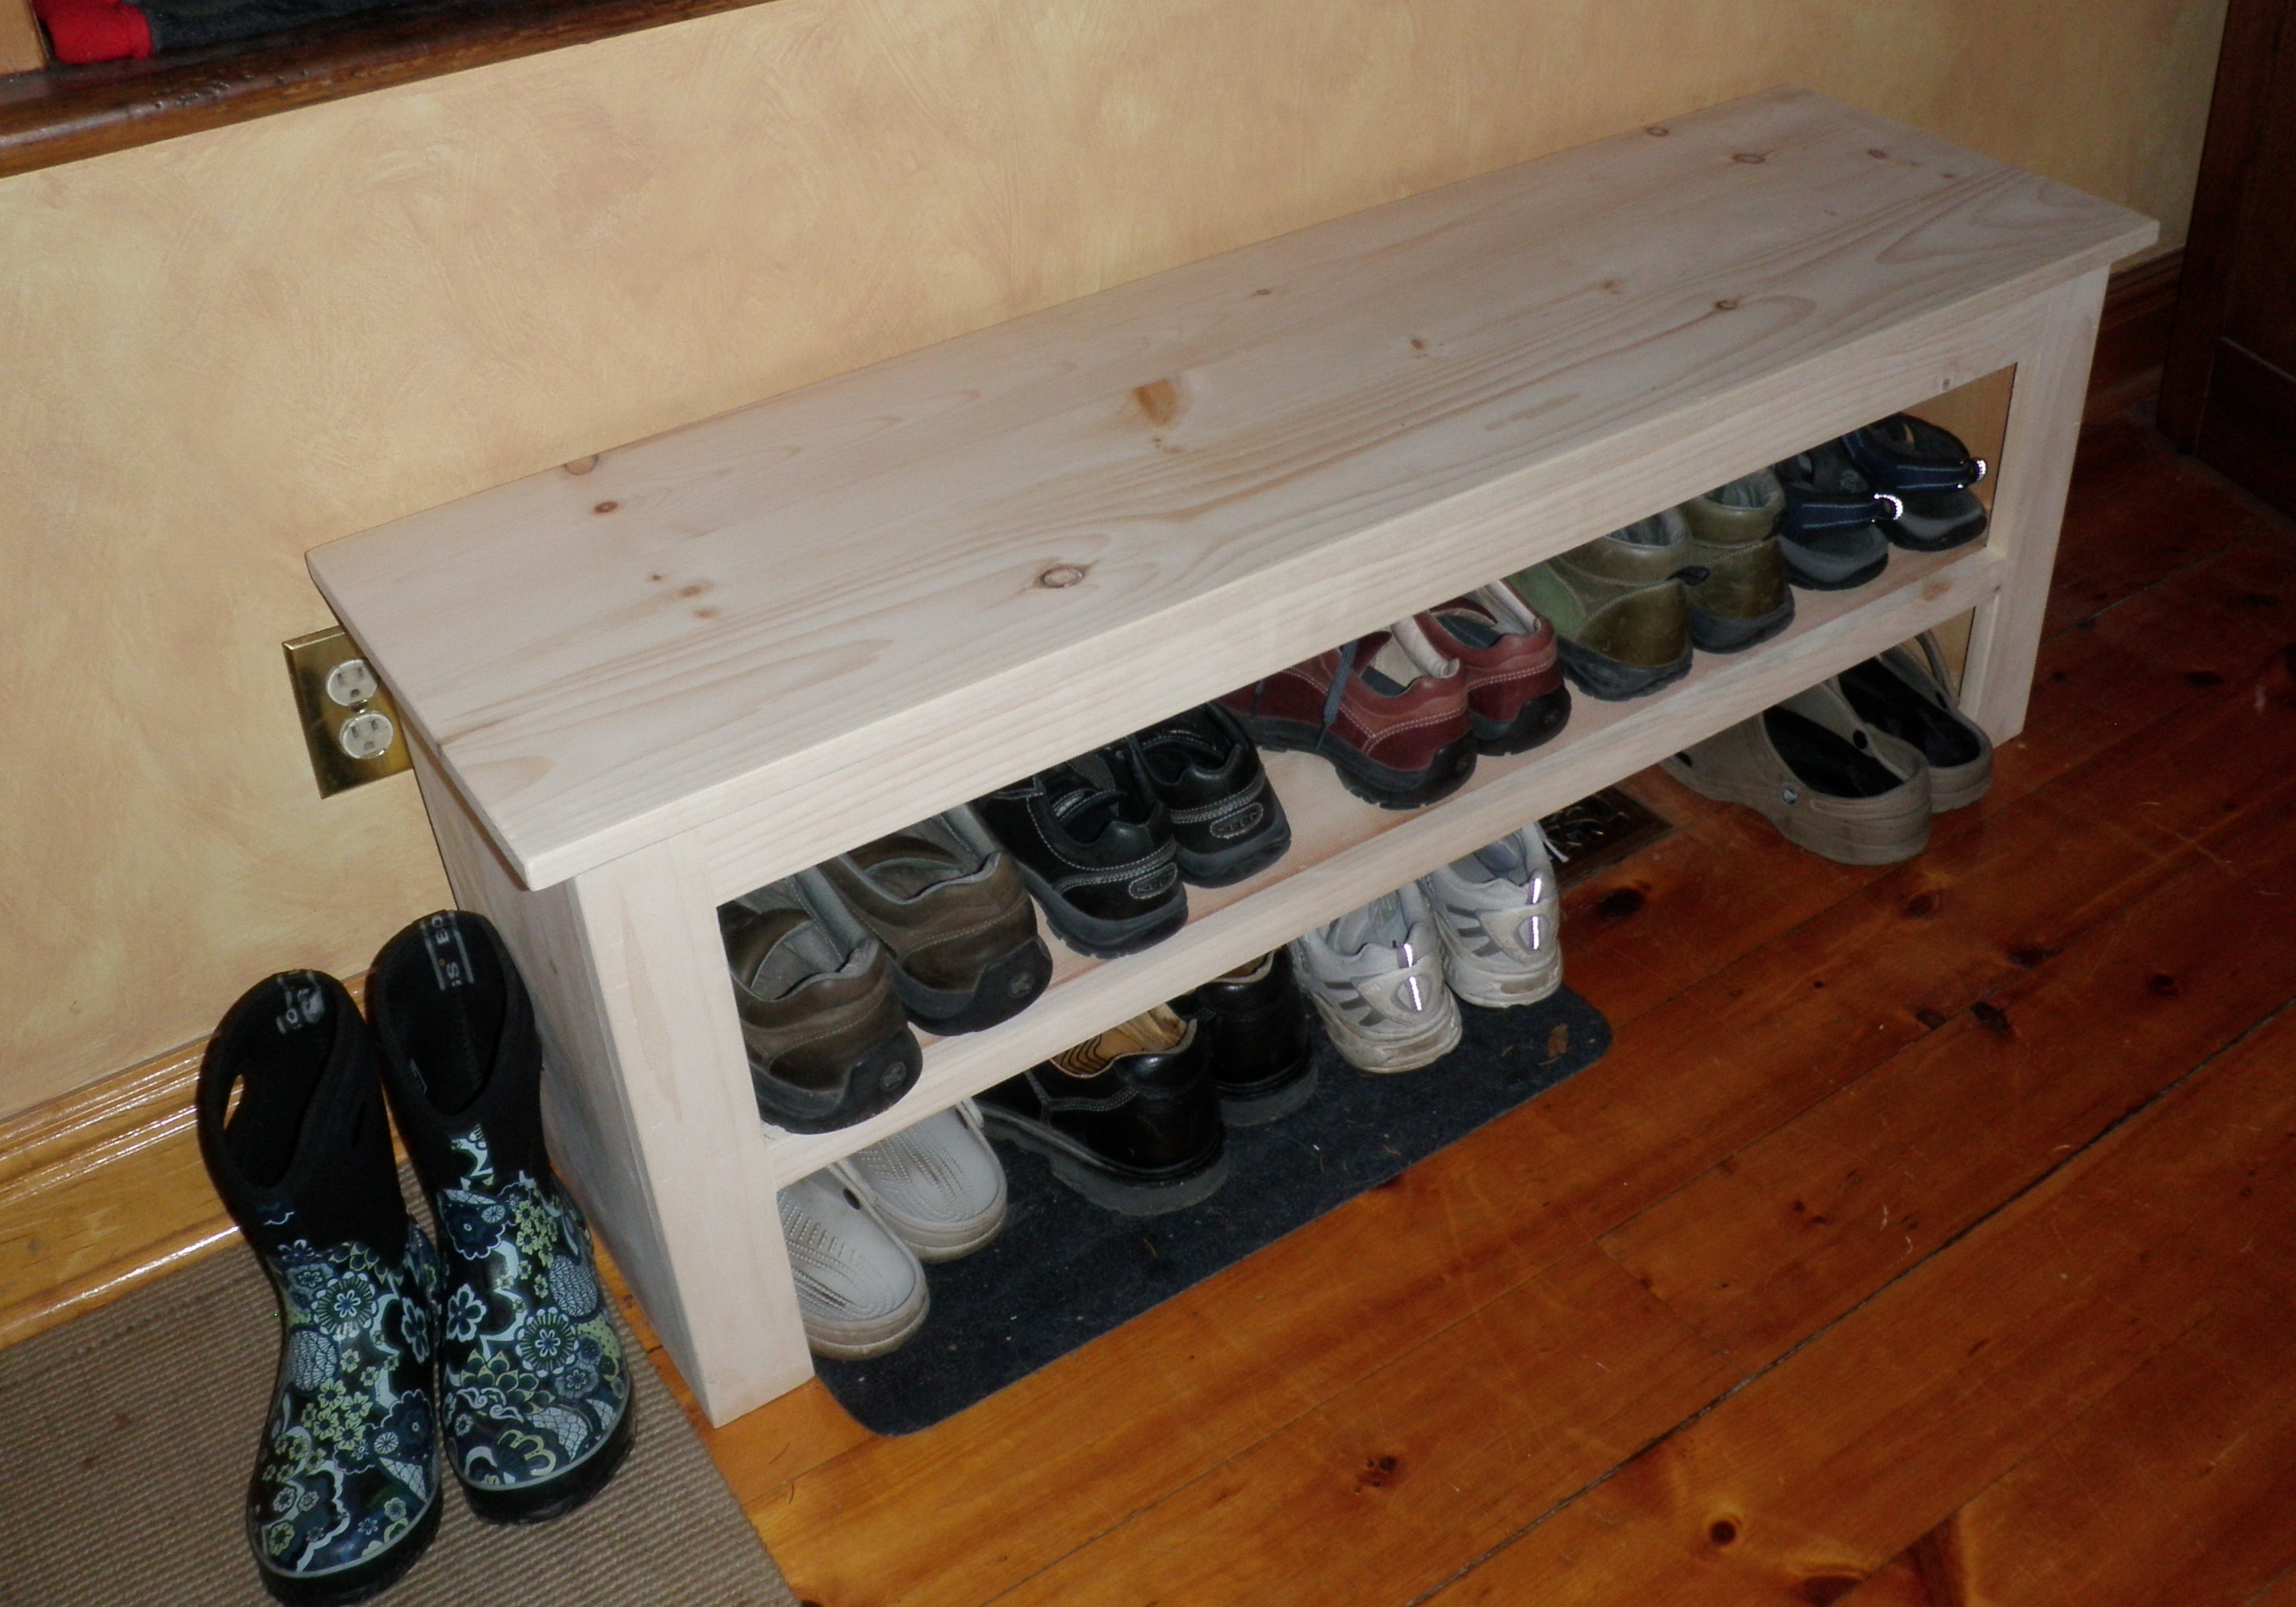 Best ideas about Shoe Benches Entryway . Save or Pin Ana White Now.